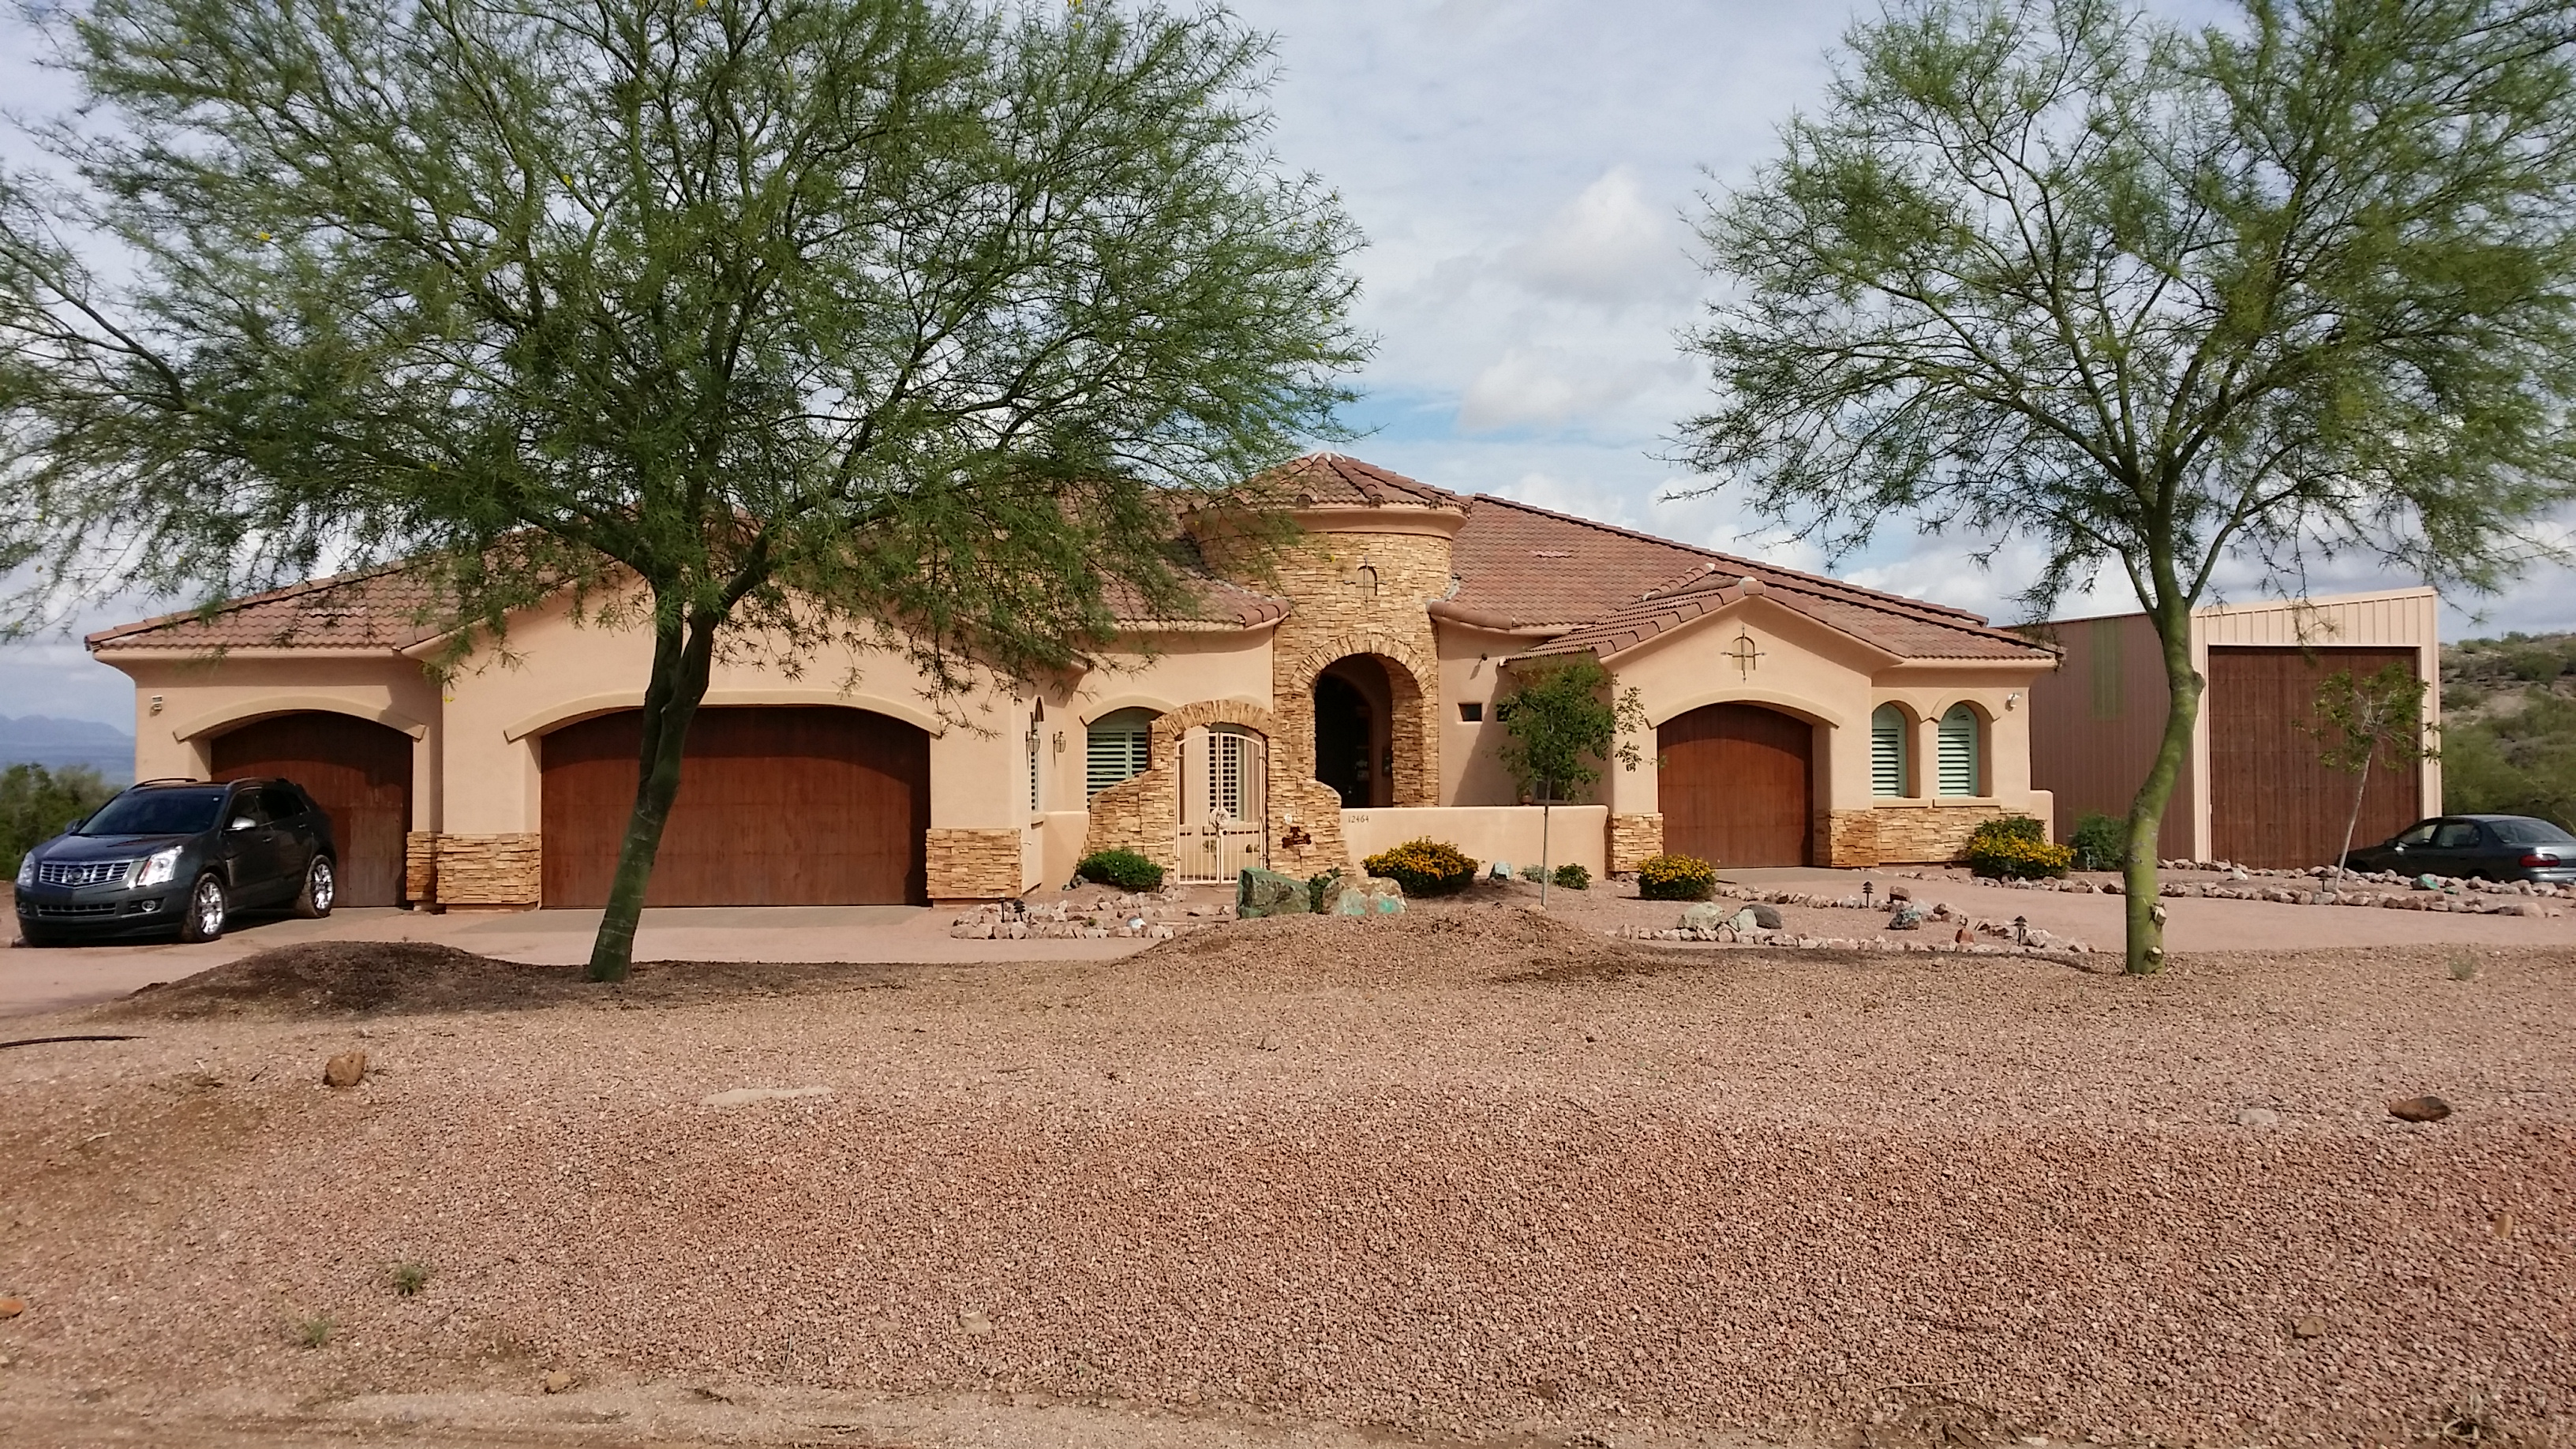 Rv Garage Homes For Sale In Phoenix Arizona Metro